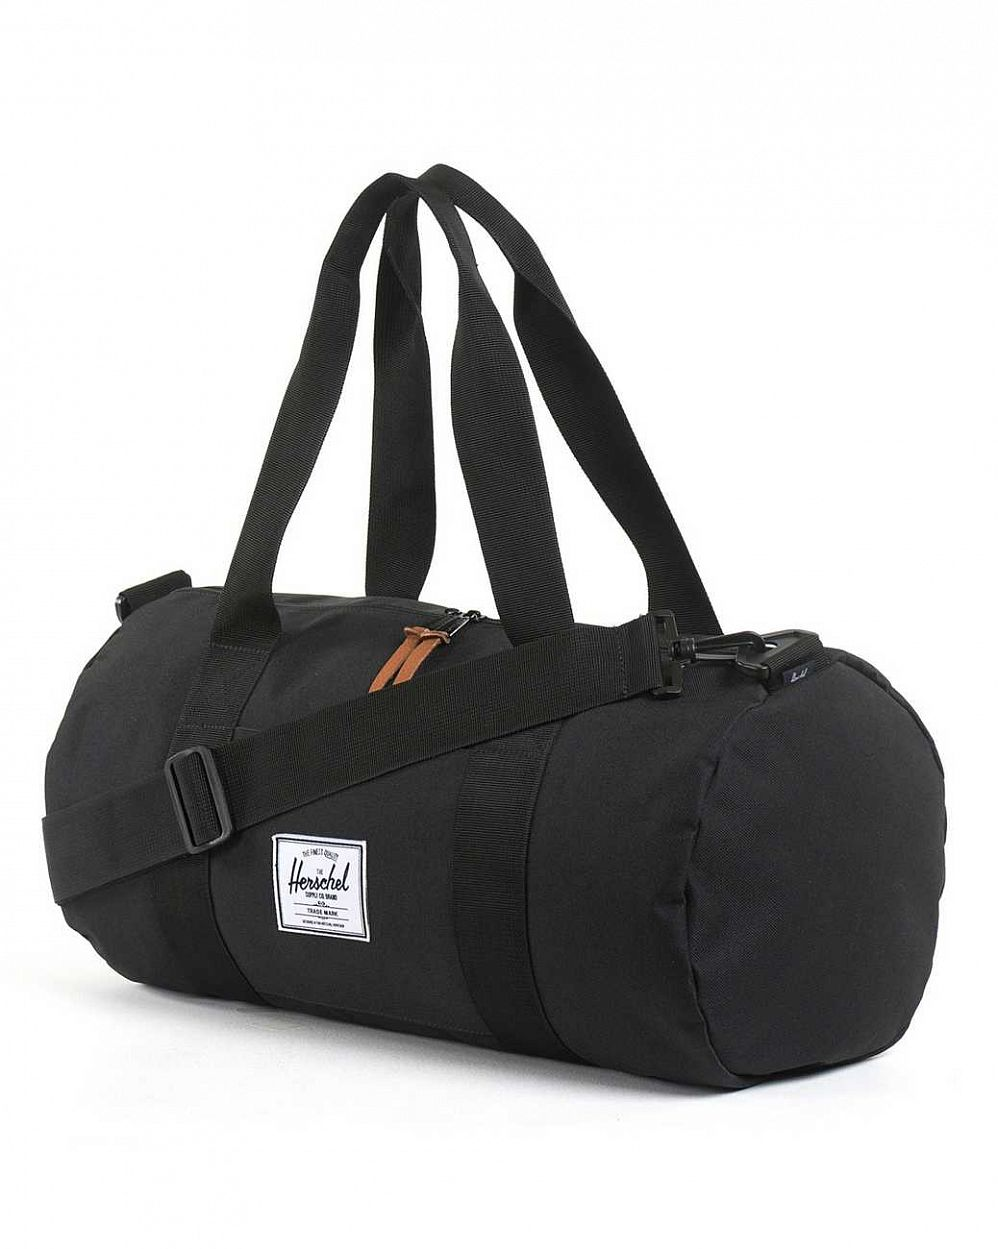 Сумка спортивная Herschel Sutton Mid Volume Black купить в интернете